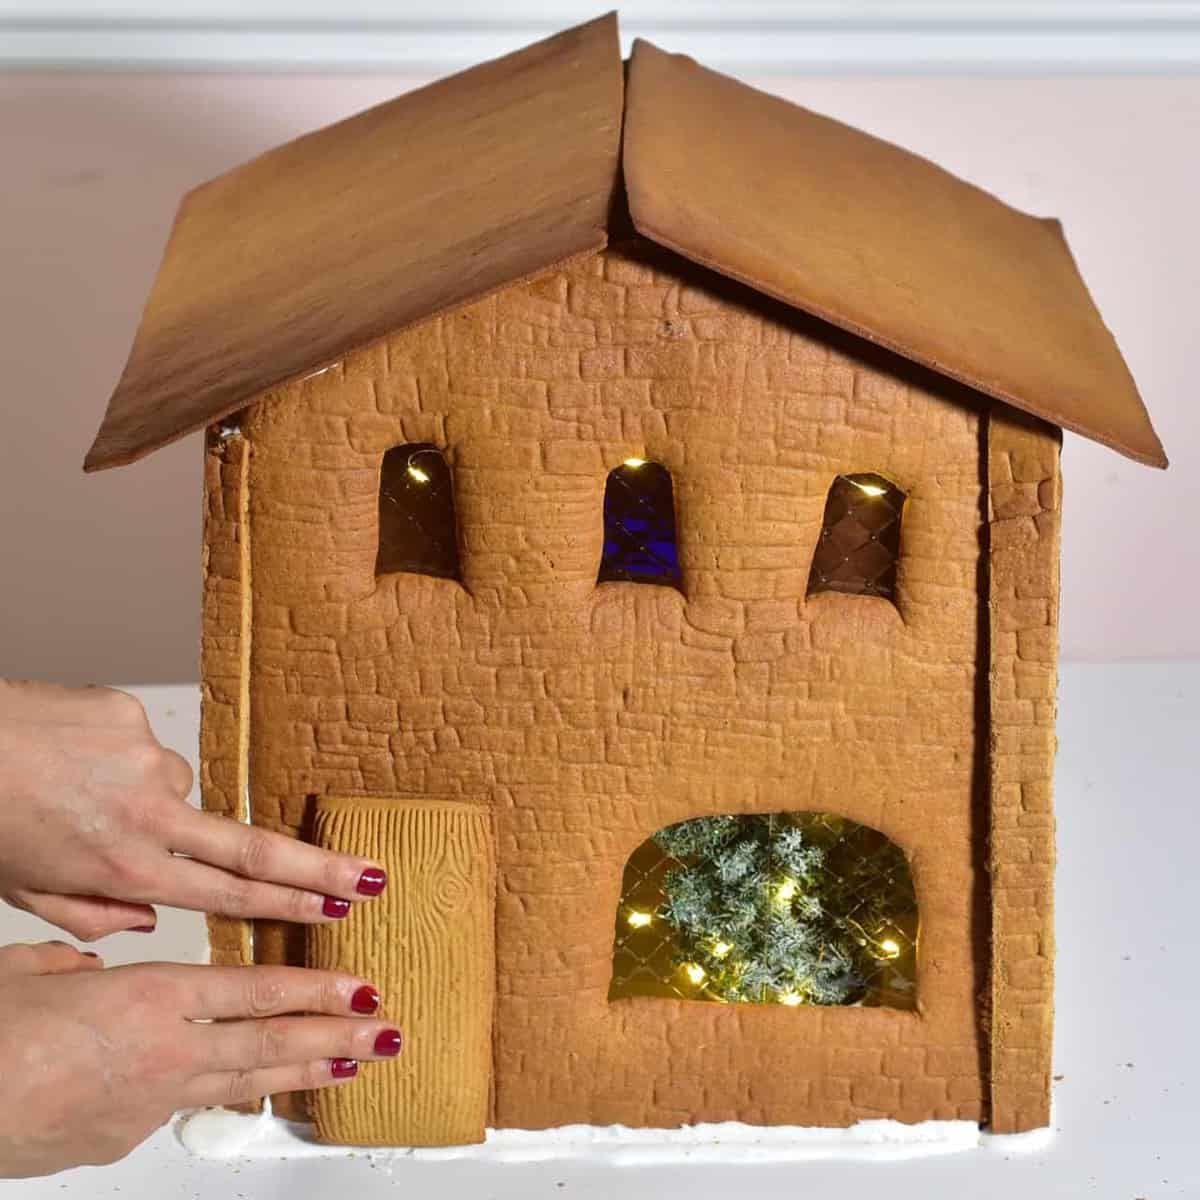 adding the roof and door to a gingerbread house